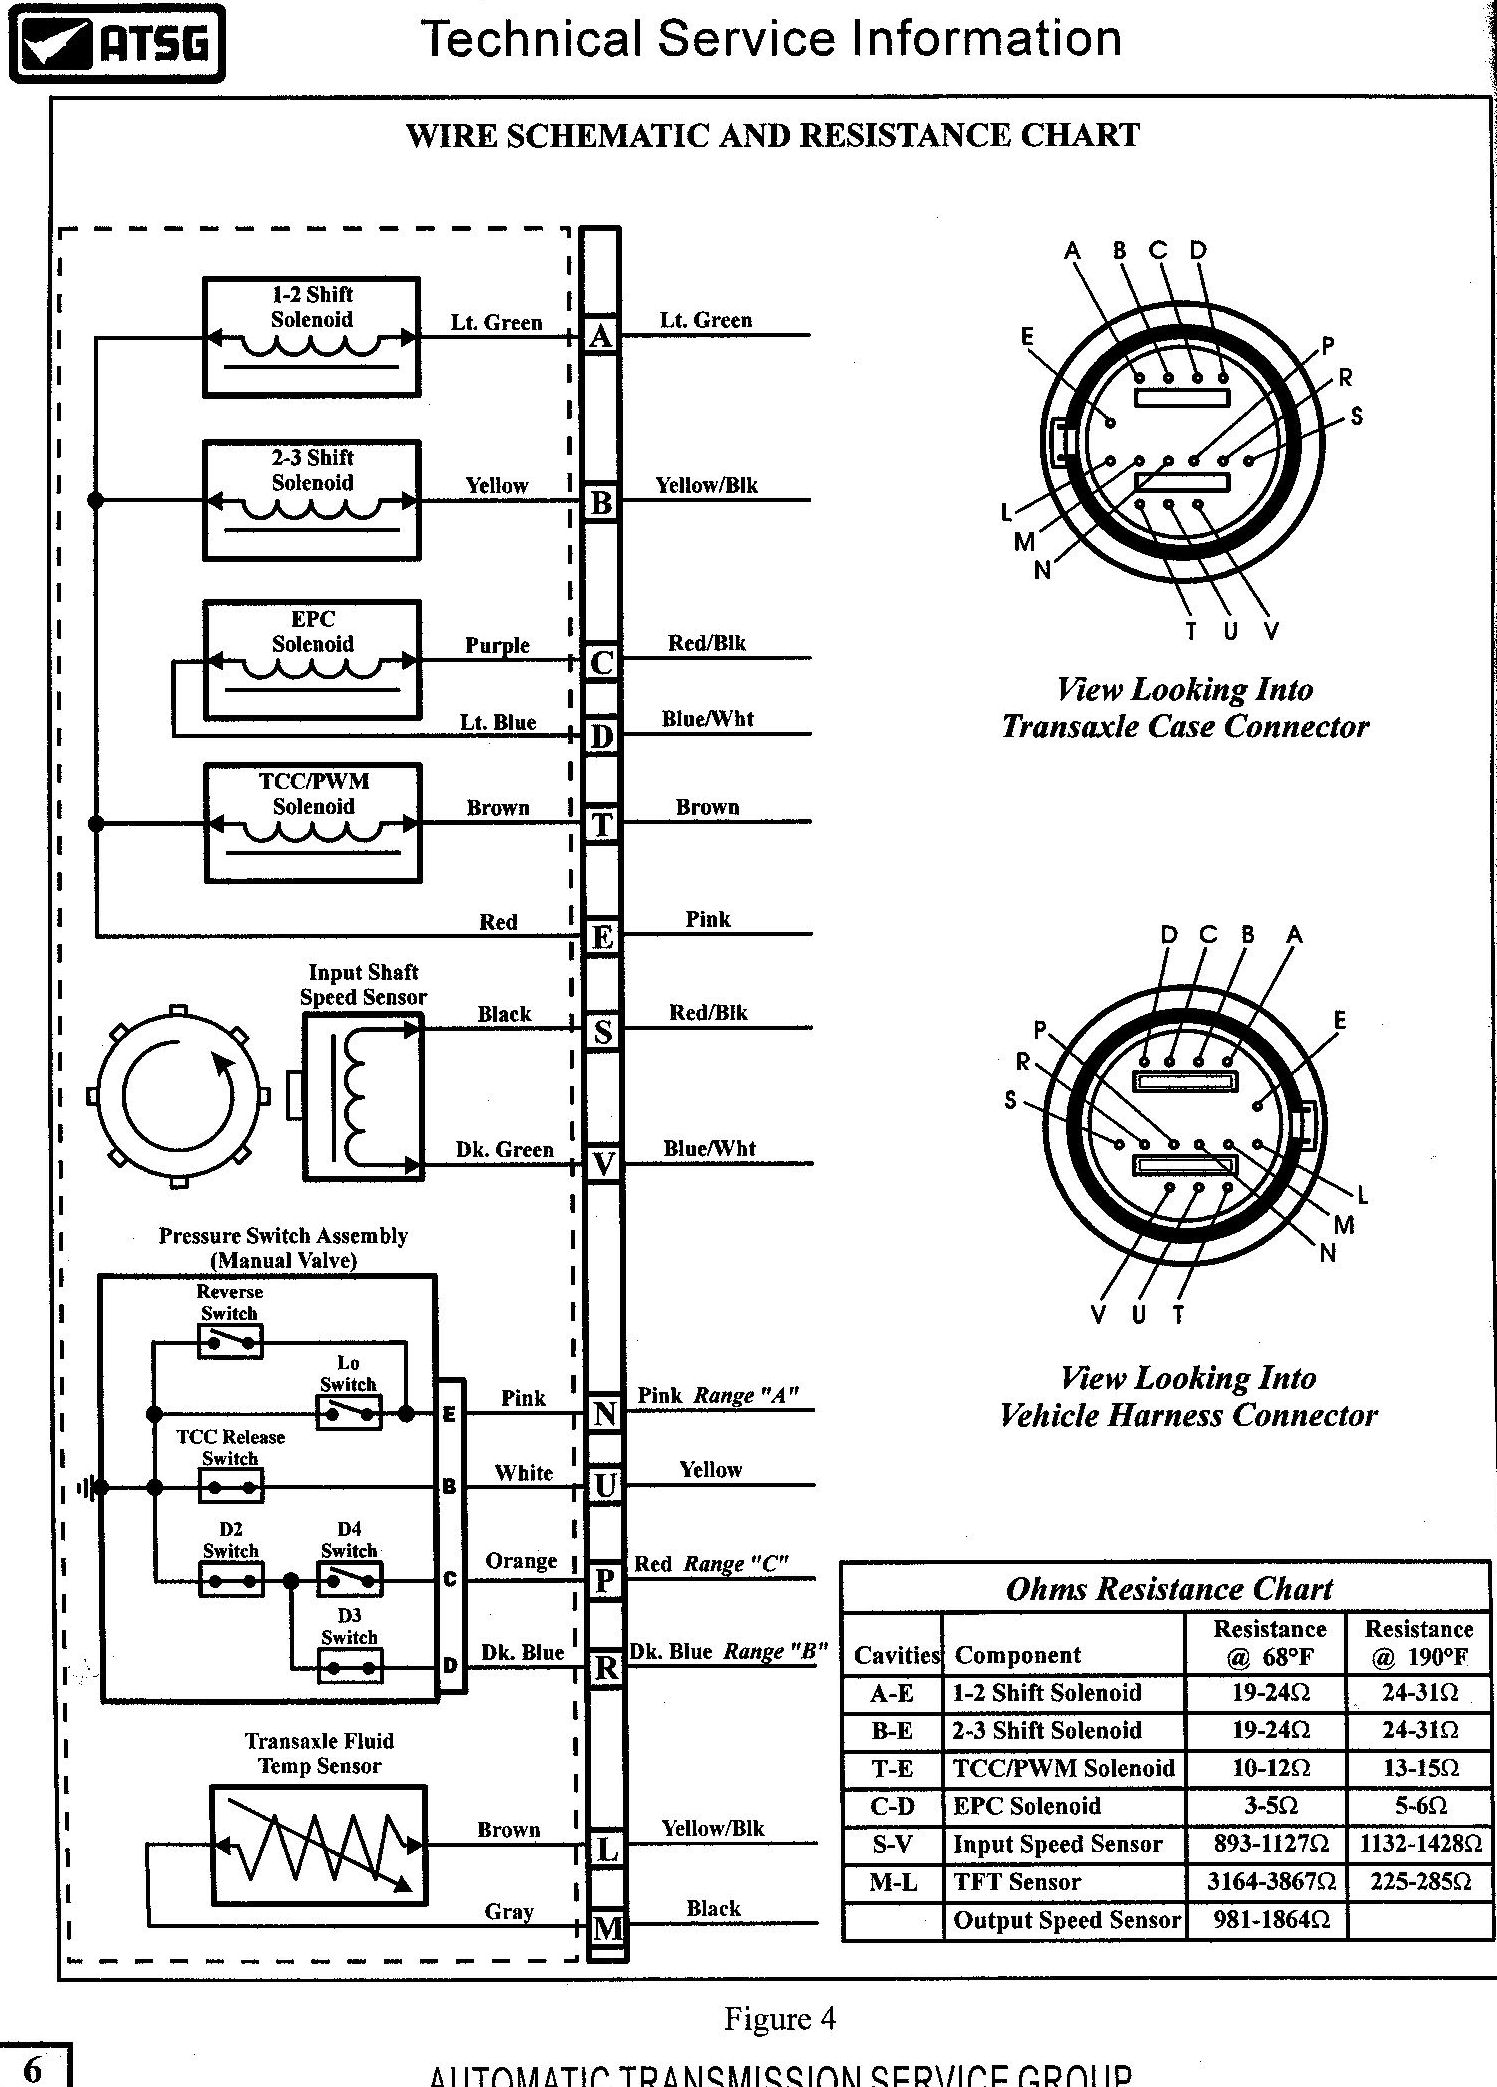 2006 impala wiring diagram water heater timer input/turbine speed sensor - gm forum buick, cadillac, olds, gmc & pontiac chat